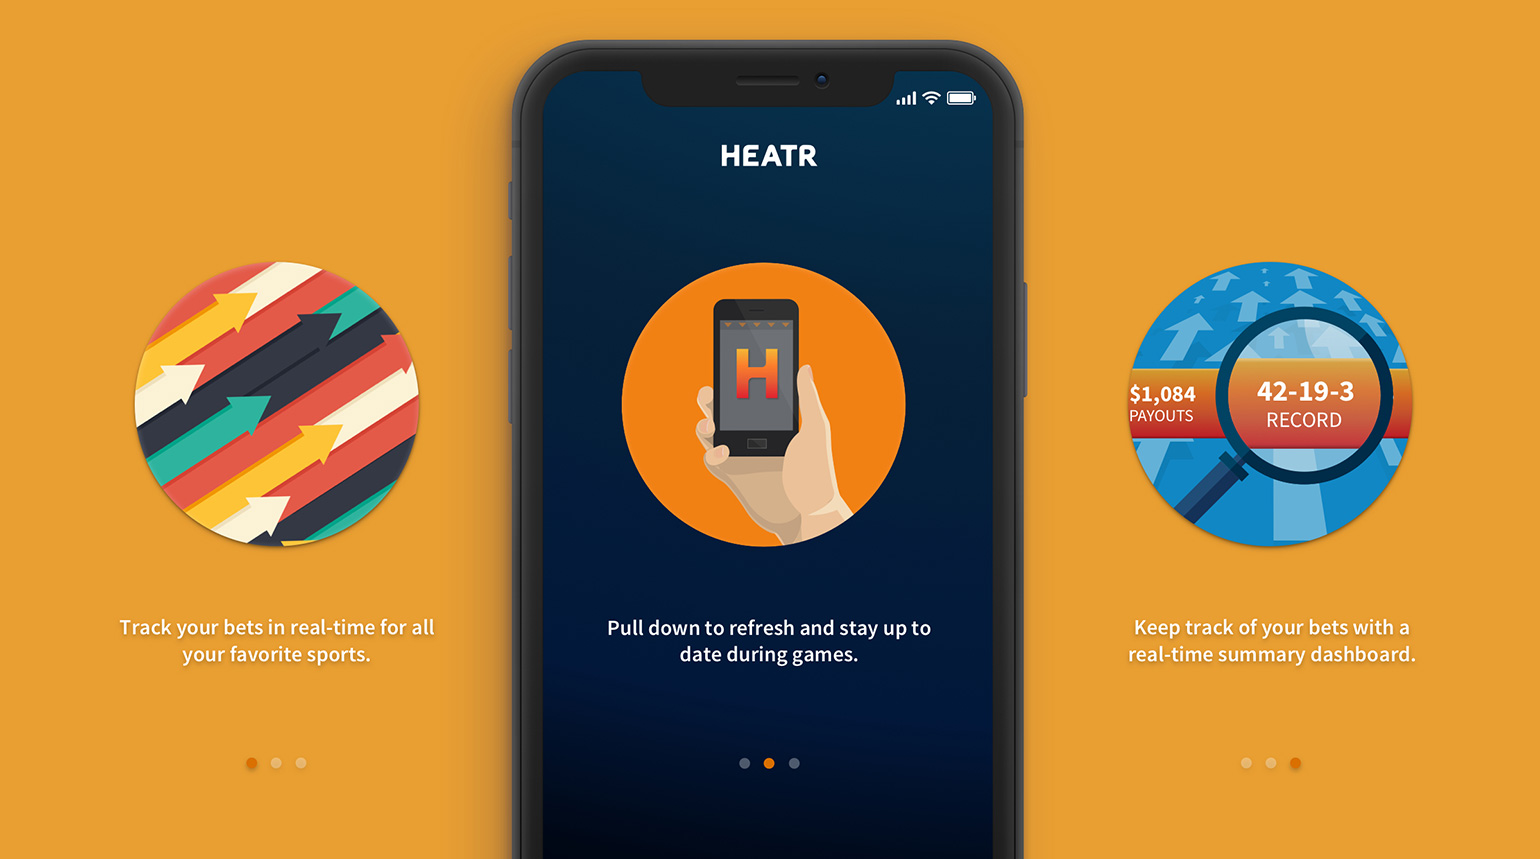 Onboarding swipe tutorial for first time users of the HEATR app.